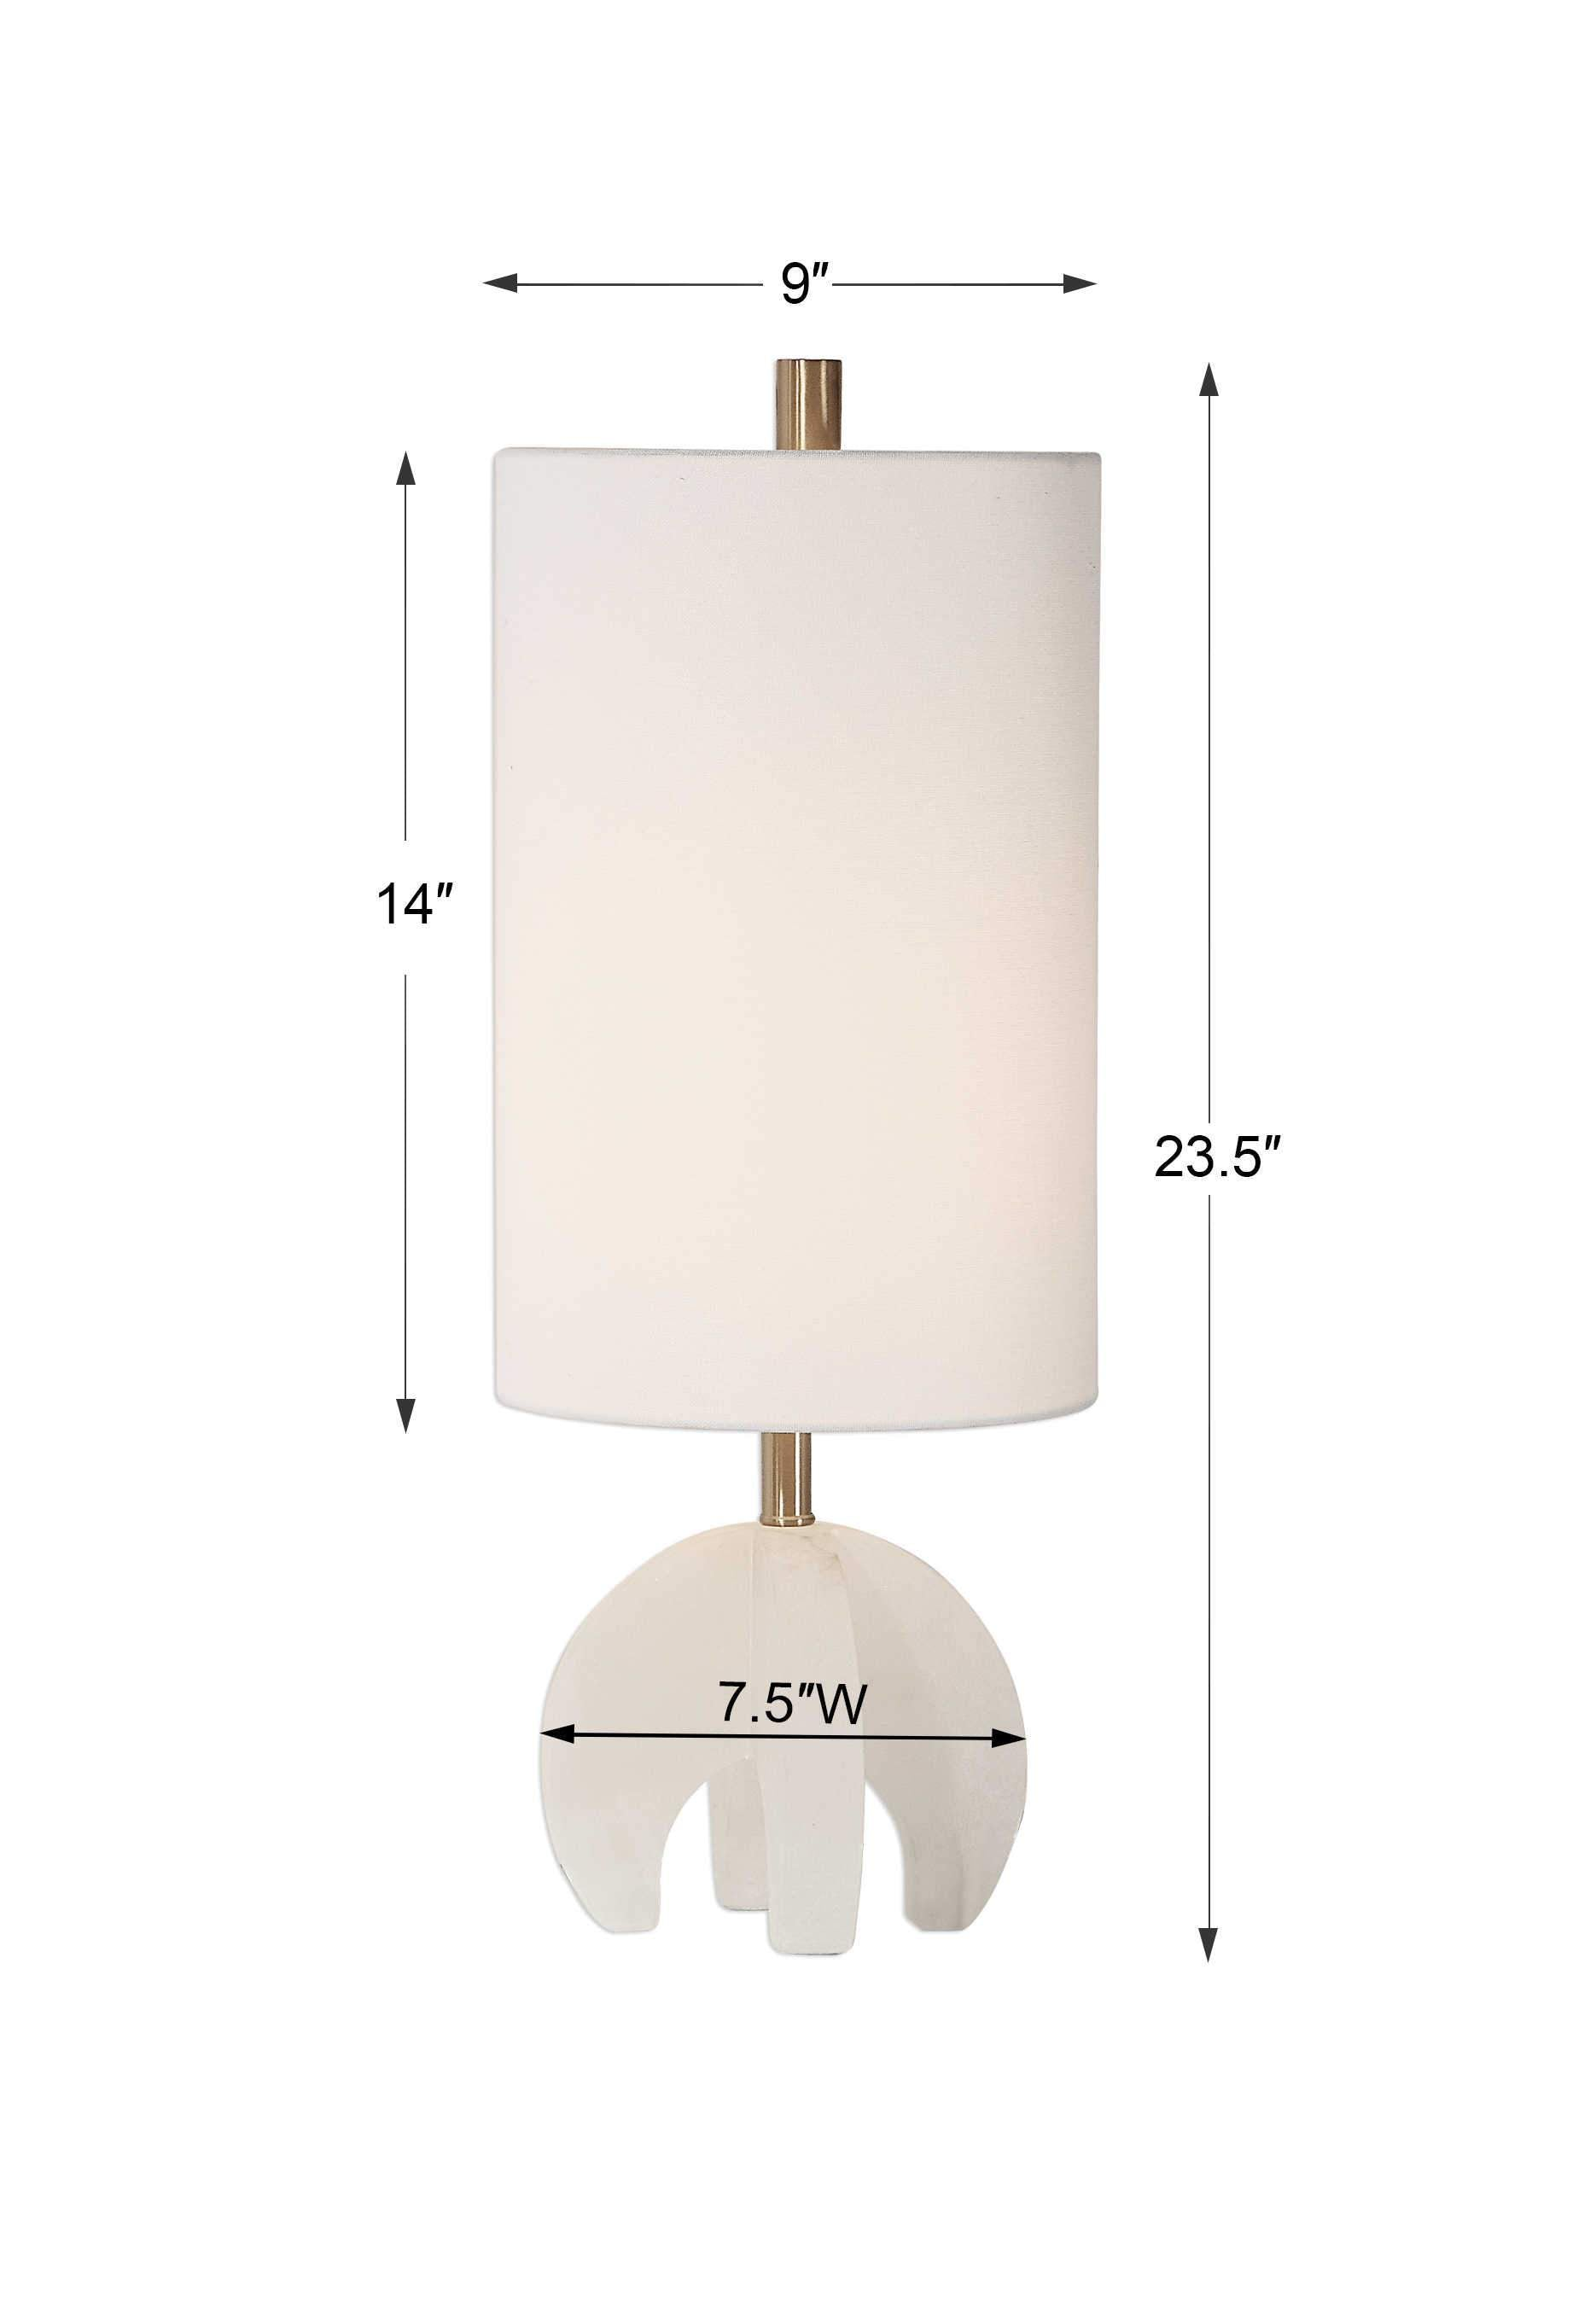 Uttermost Alanea Accent Lamp; AVAIL: MAY 21, 2021